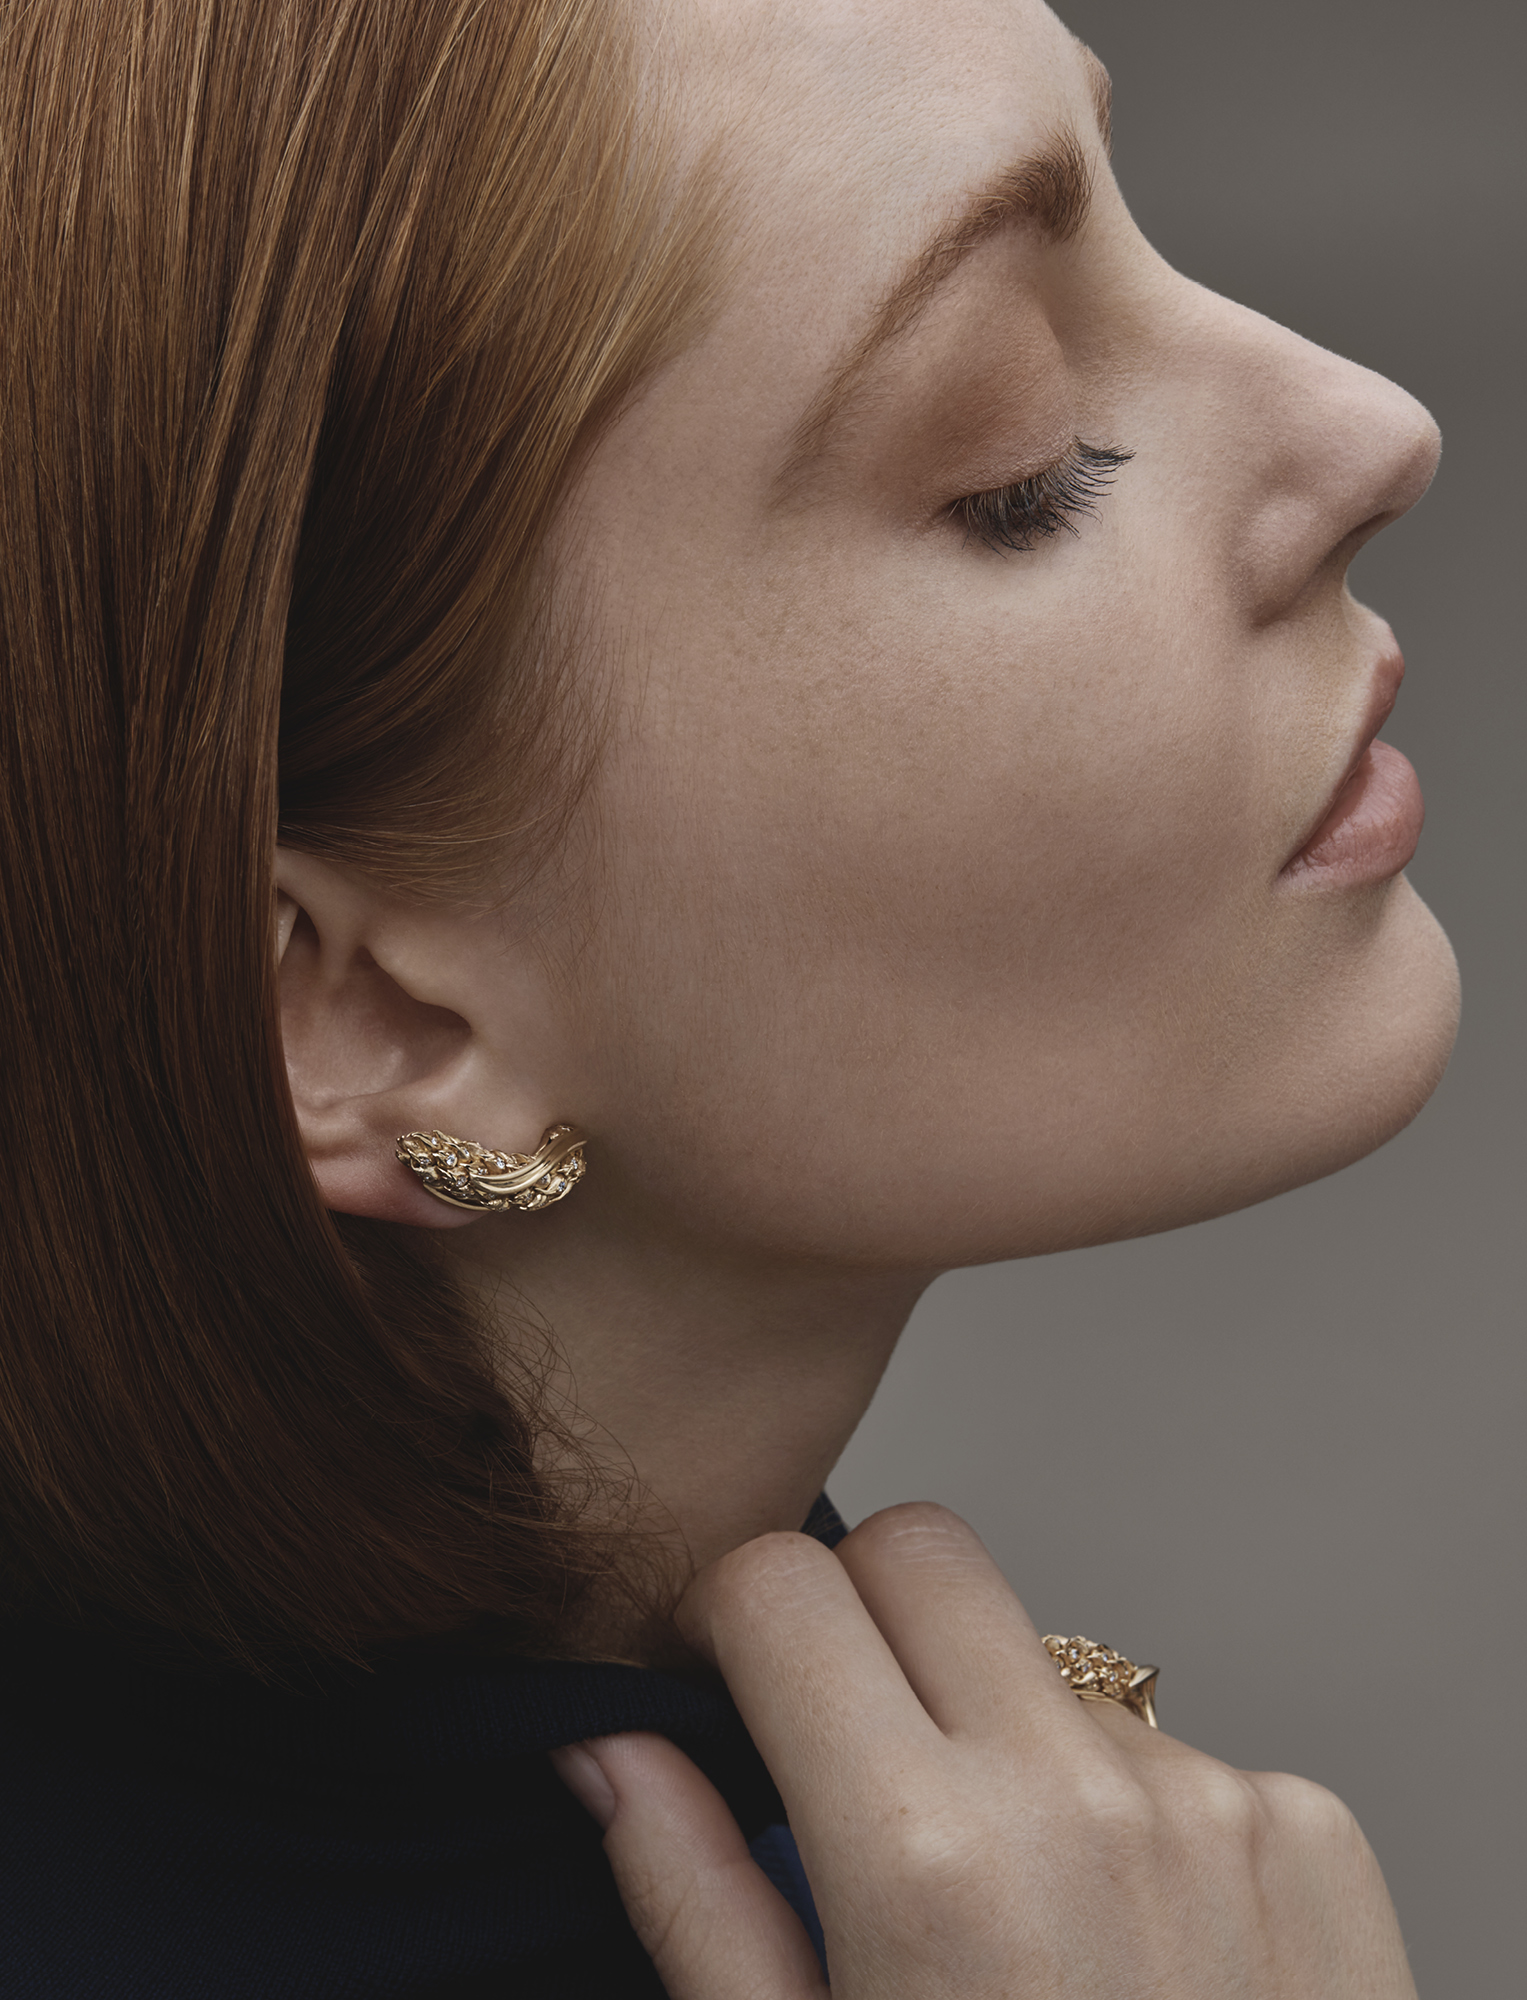 Cashmere turtle neck, £75, DAKS; L'Epi de Blé earrings, £14,000, L'Epi de Blé ring, £8,080, in yellow gold and brilliant-cut diamonds, both CHAUMET